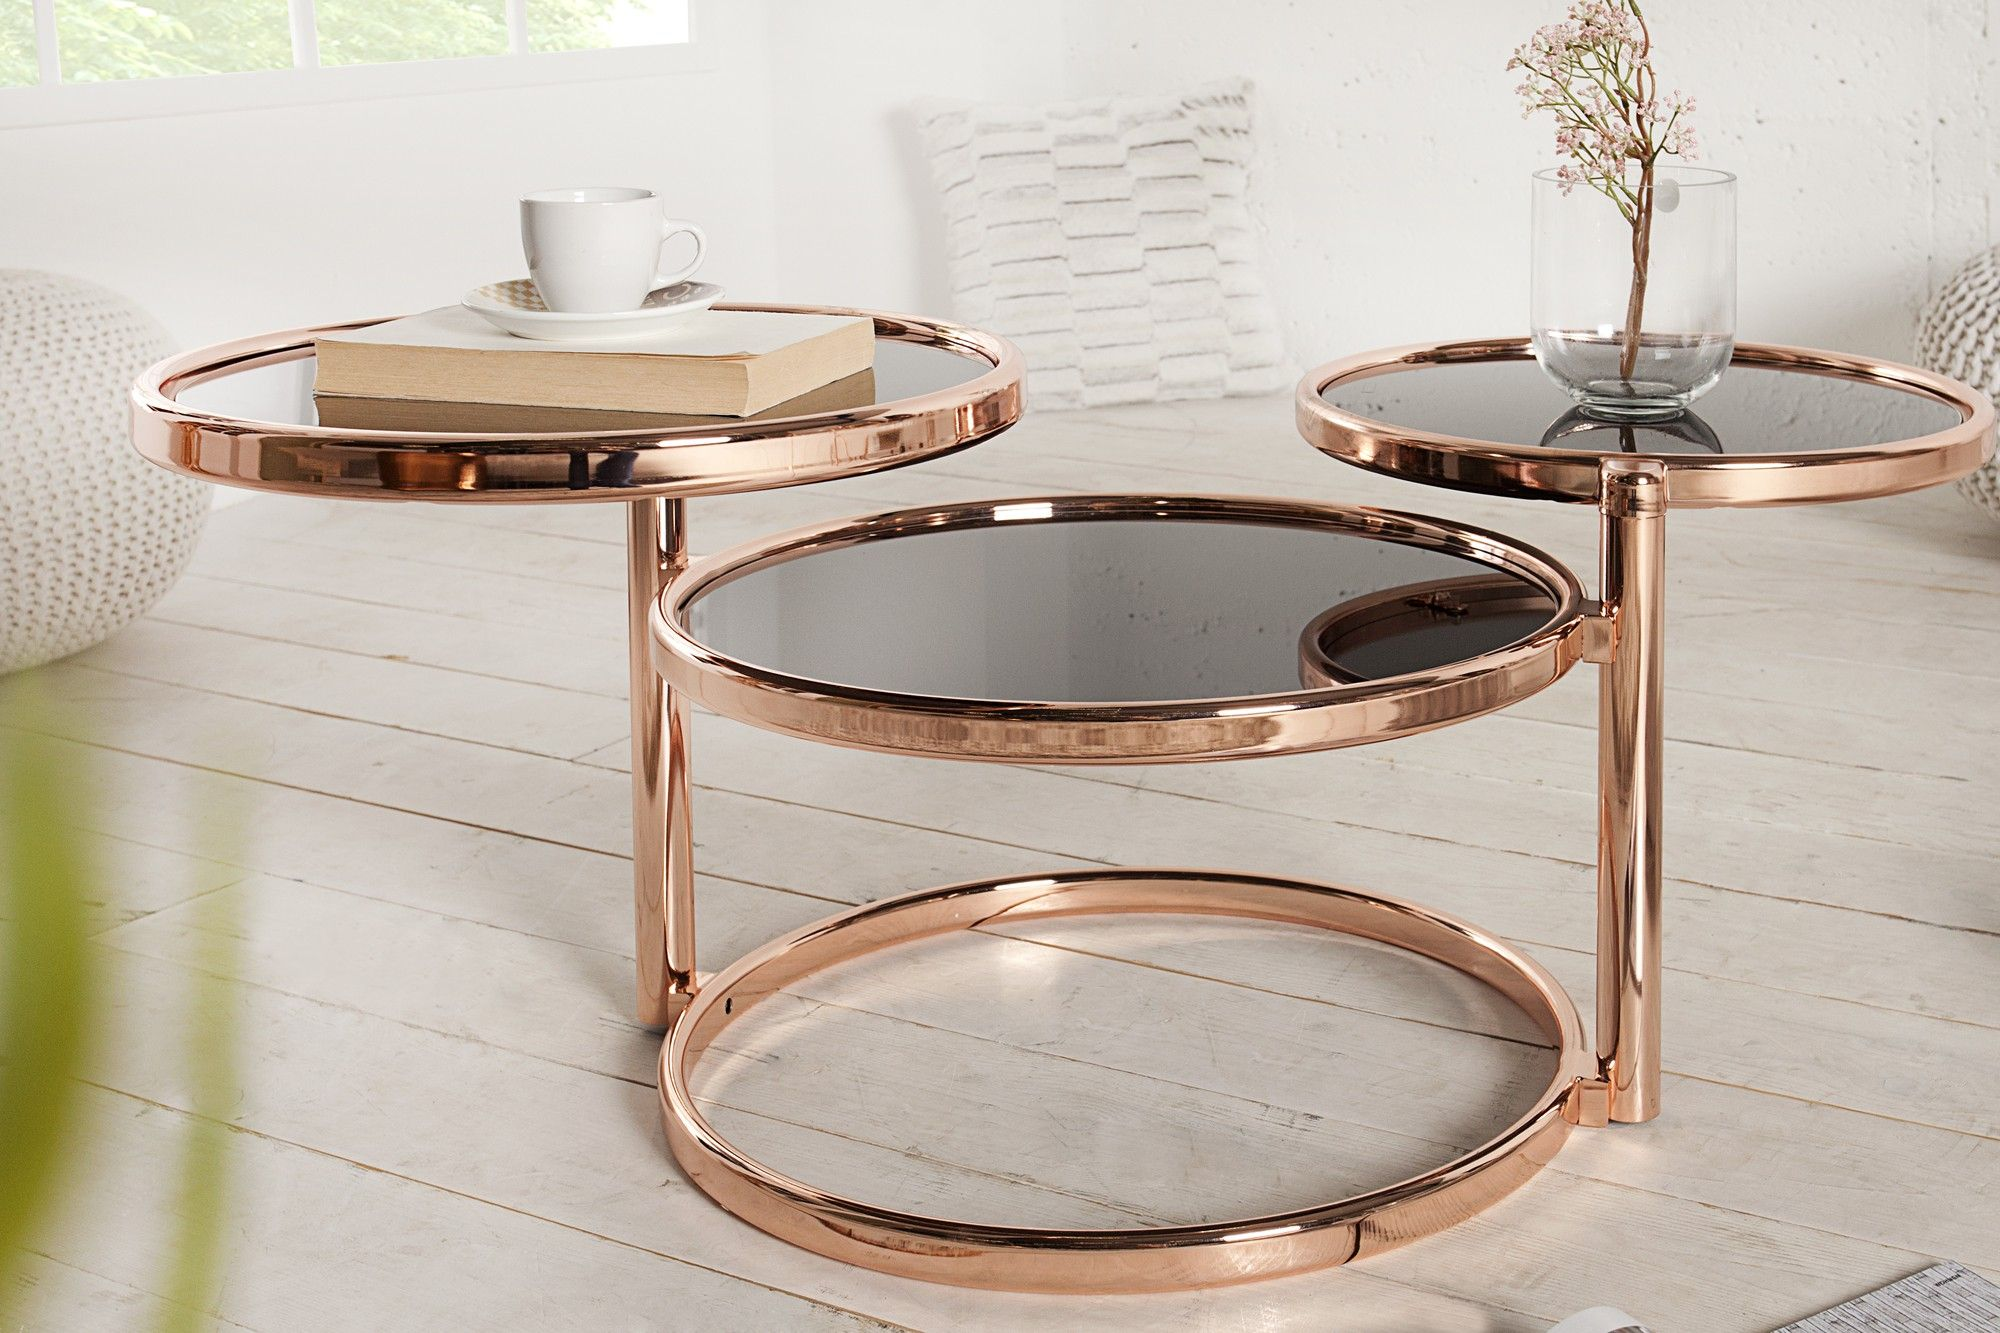 Table Basse Design Sheva Table D Appoint Design Table D Appoint Table Basse Design